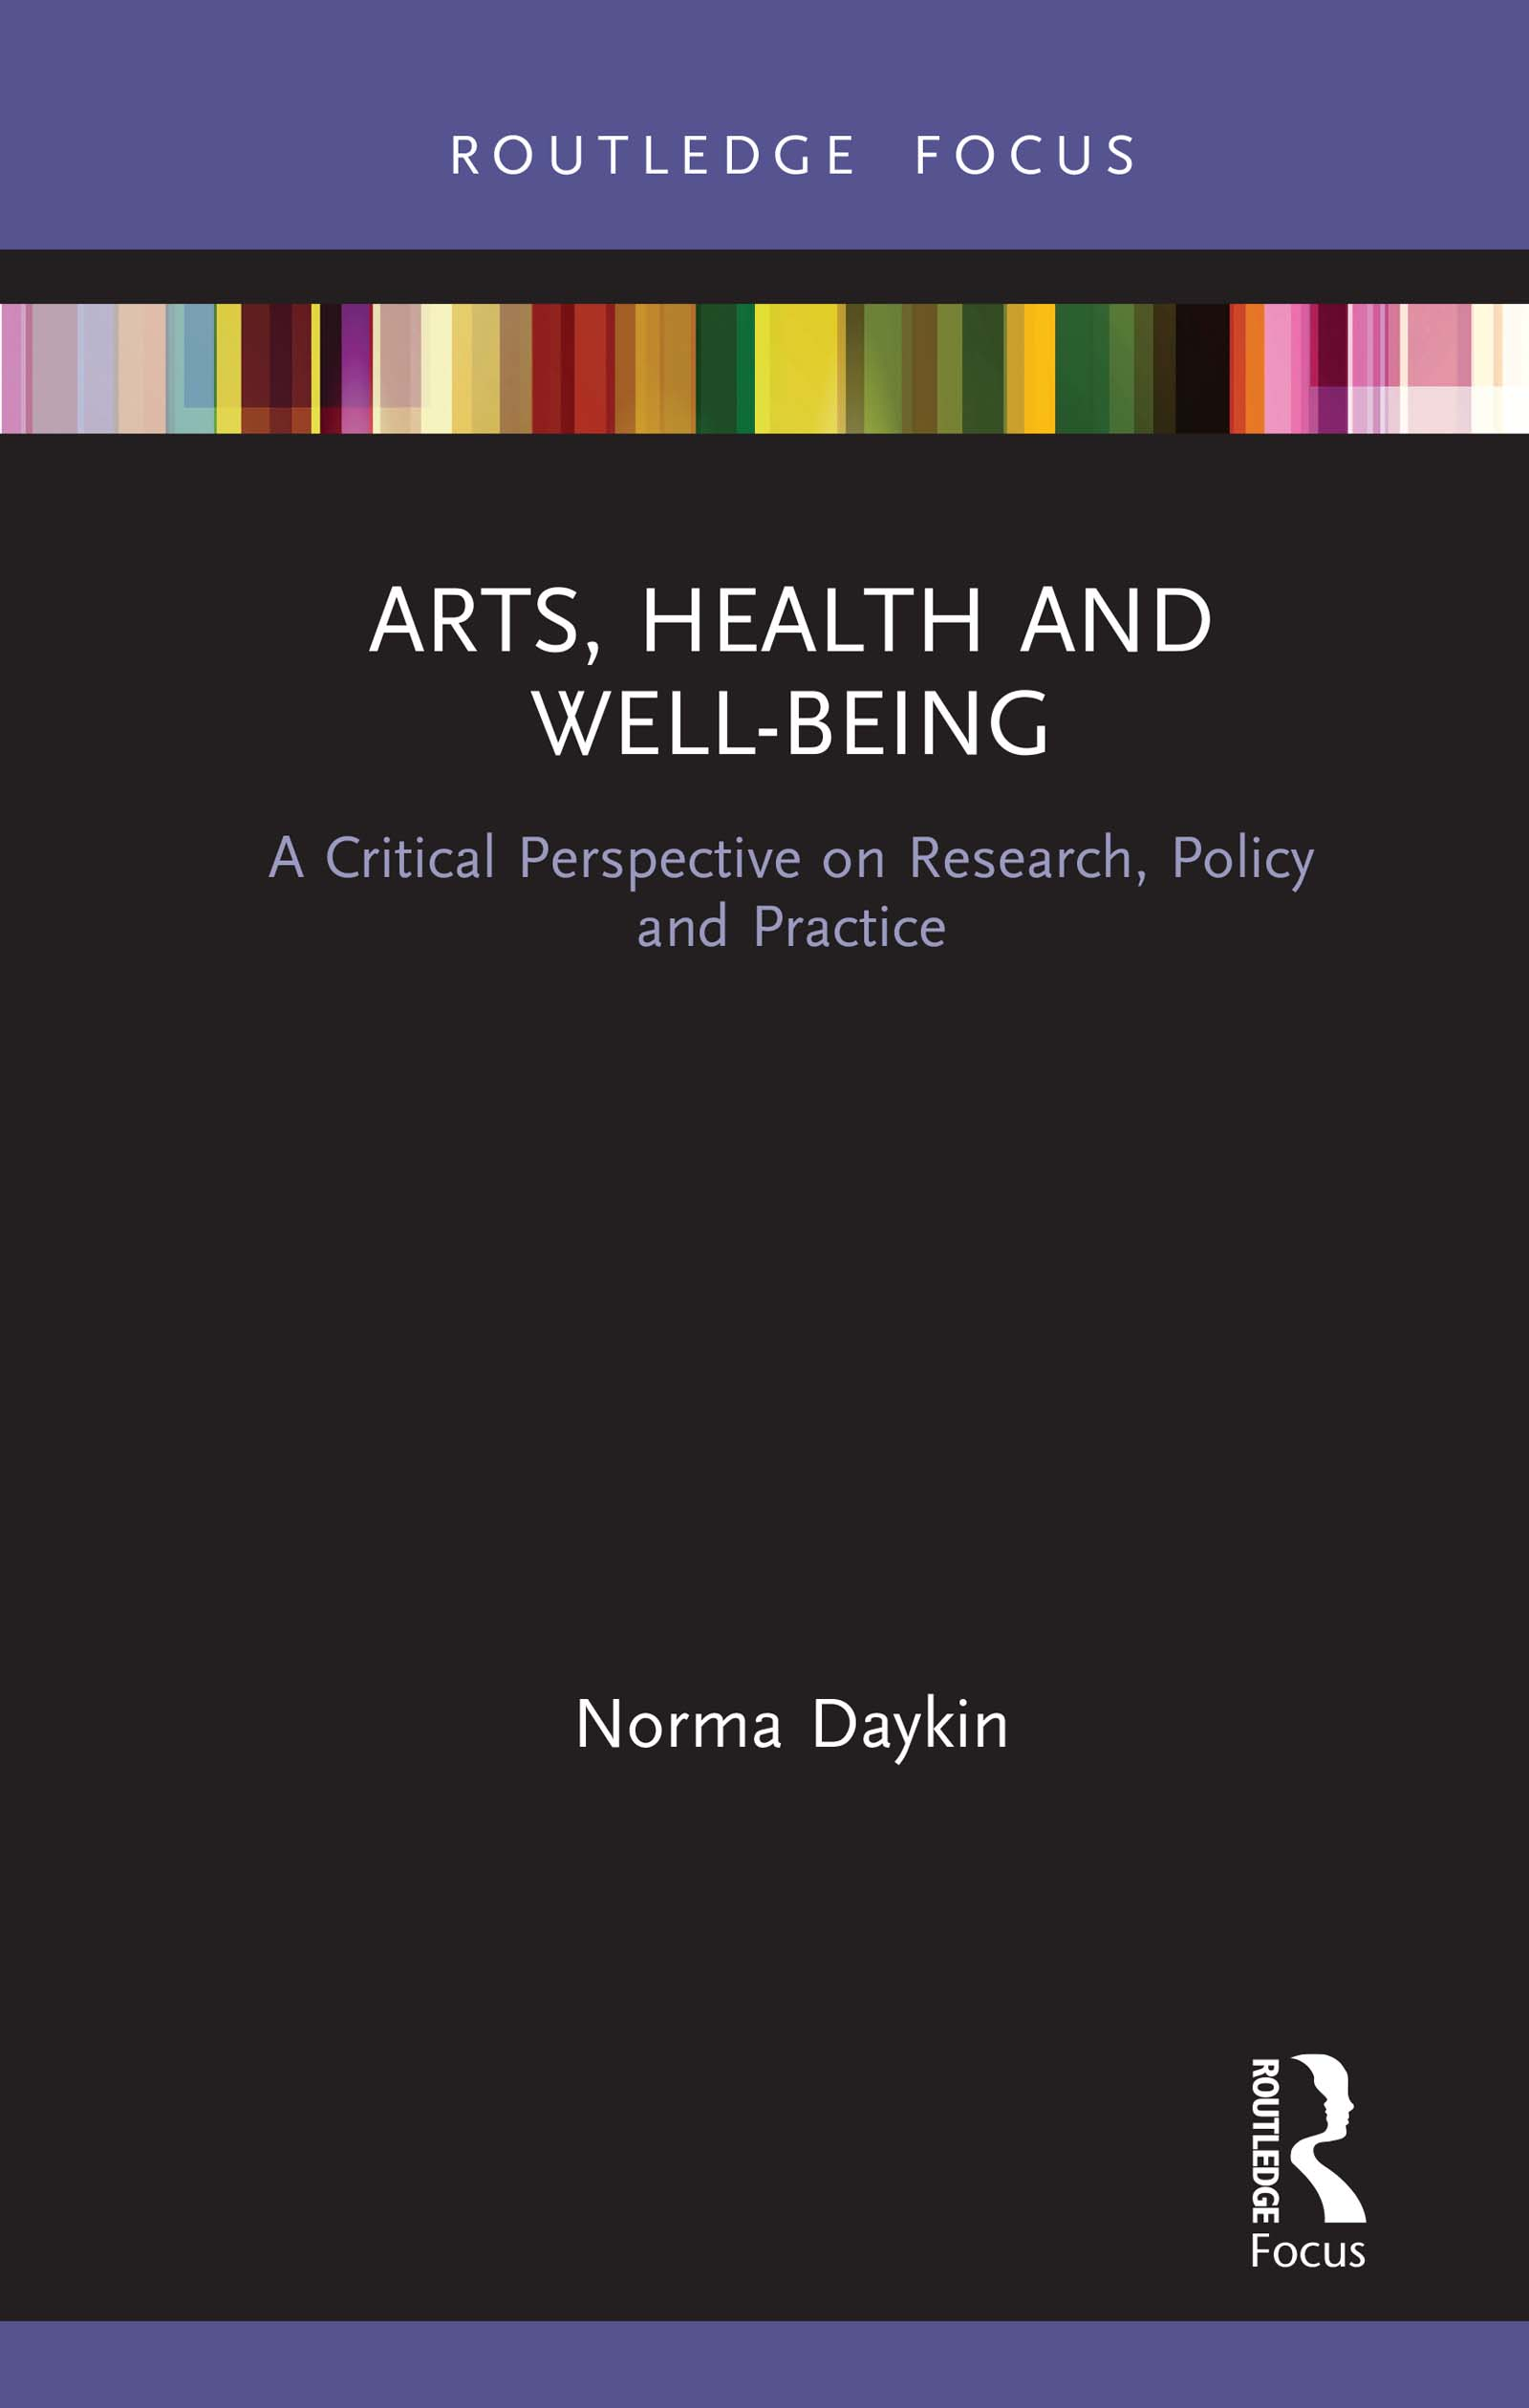 Arts, Health and Well-Being: A Critical Perspective on Research, Policy and Practice book cover